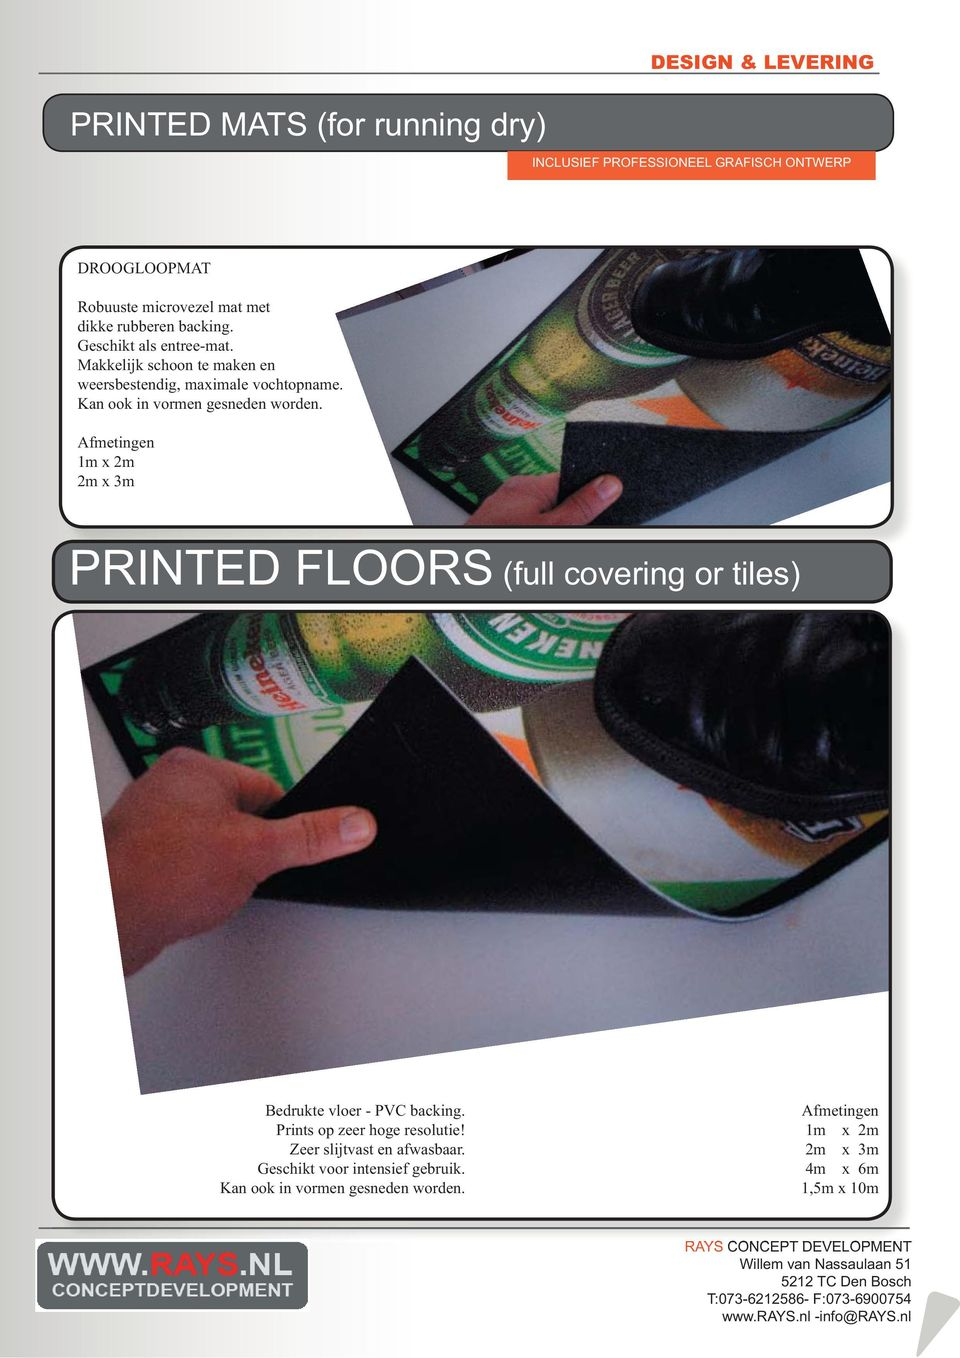 Afmetingen 1m x 2m 2m x 3m PRINTED FLOORS (full covering or tiles) Bedrukte vloer - PVC backing.